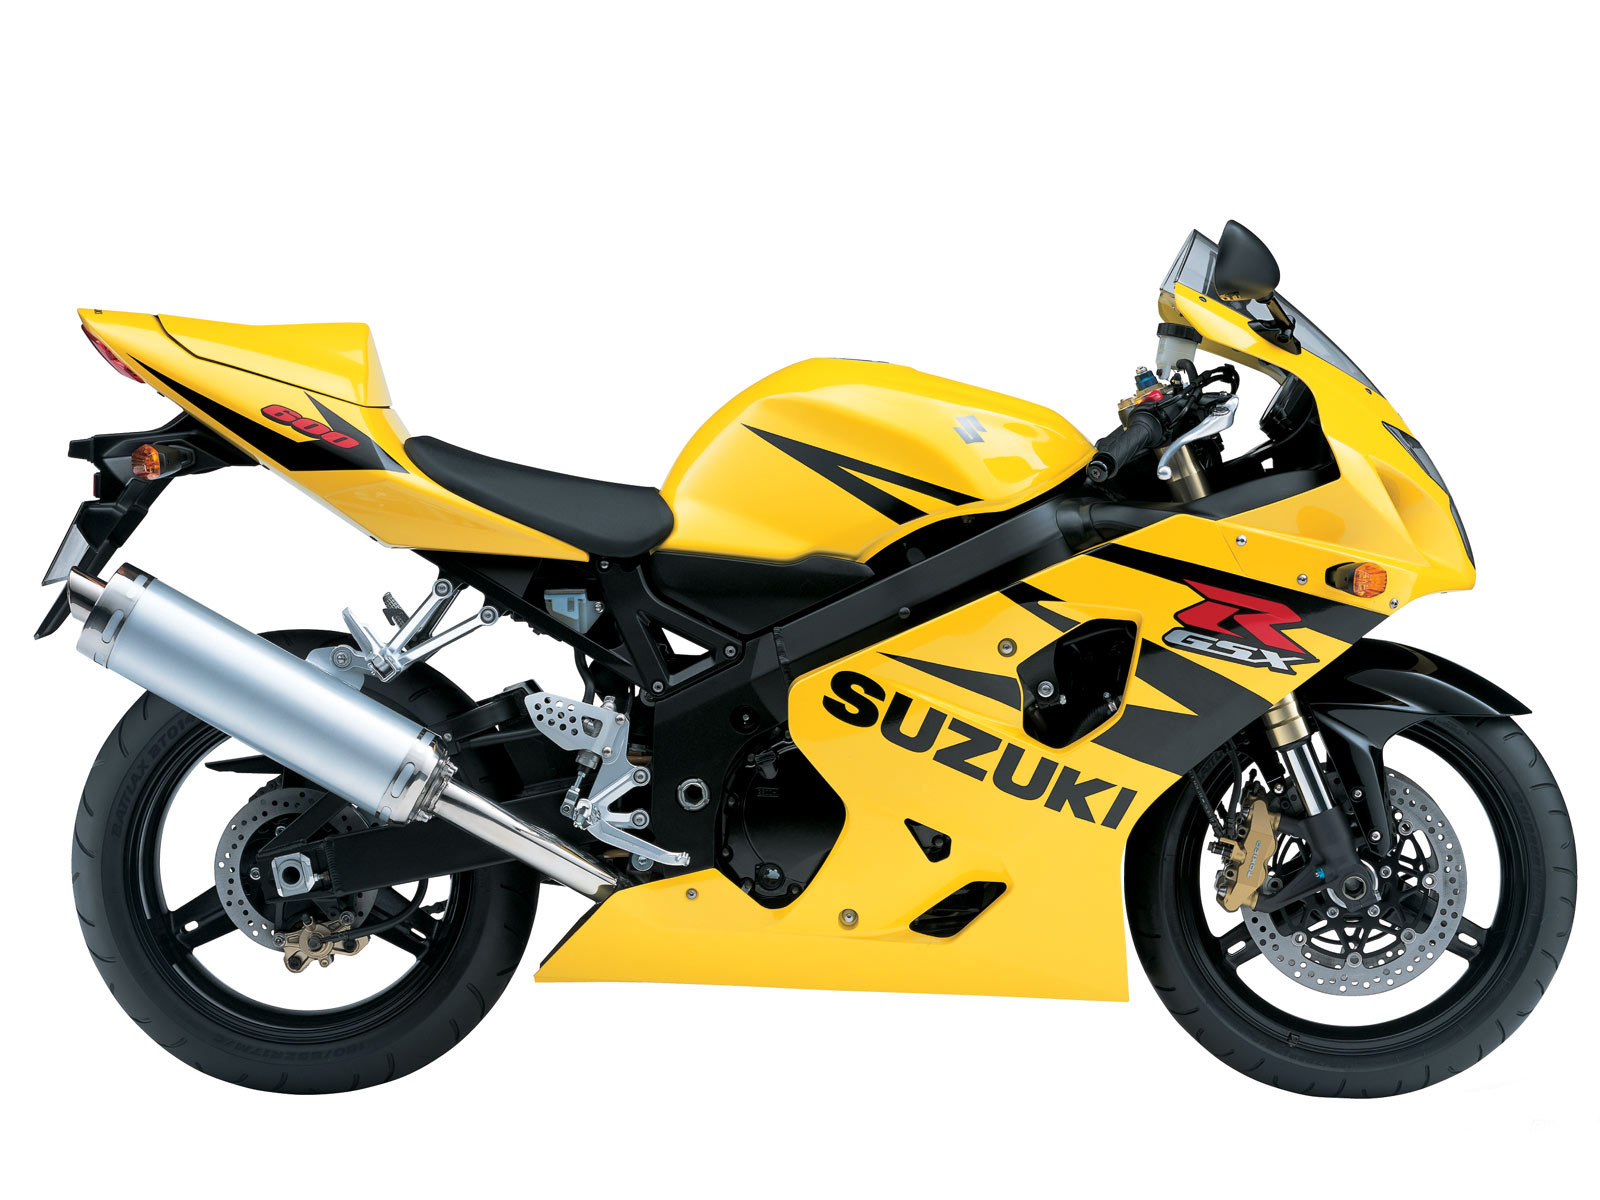 suzuki gsx r 600 2004 pictures insurance informations specs. Black Bedroom Furniture Sets. Home Design Ideas